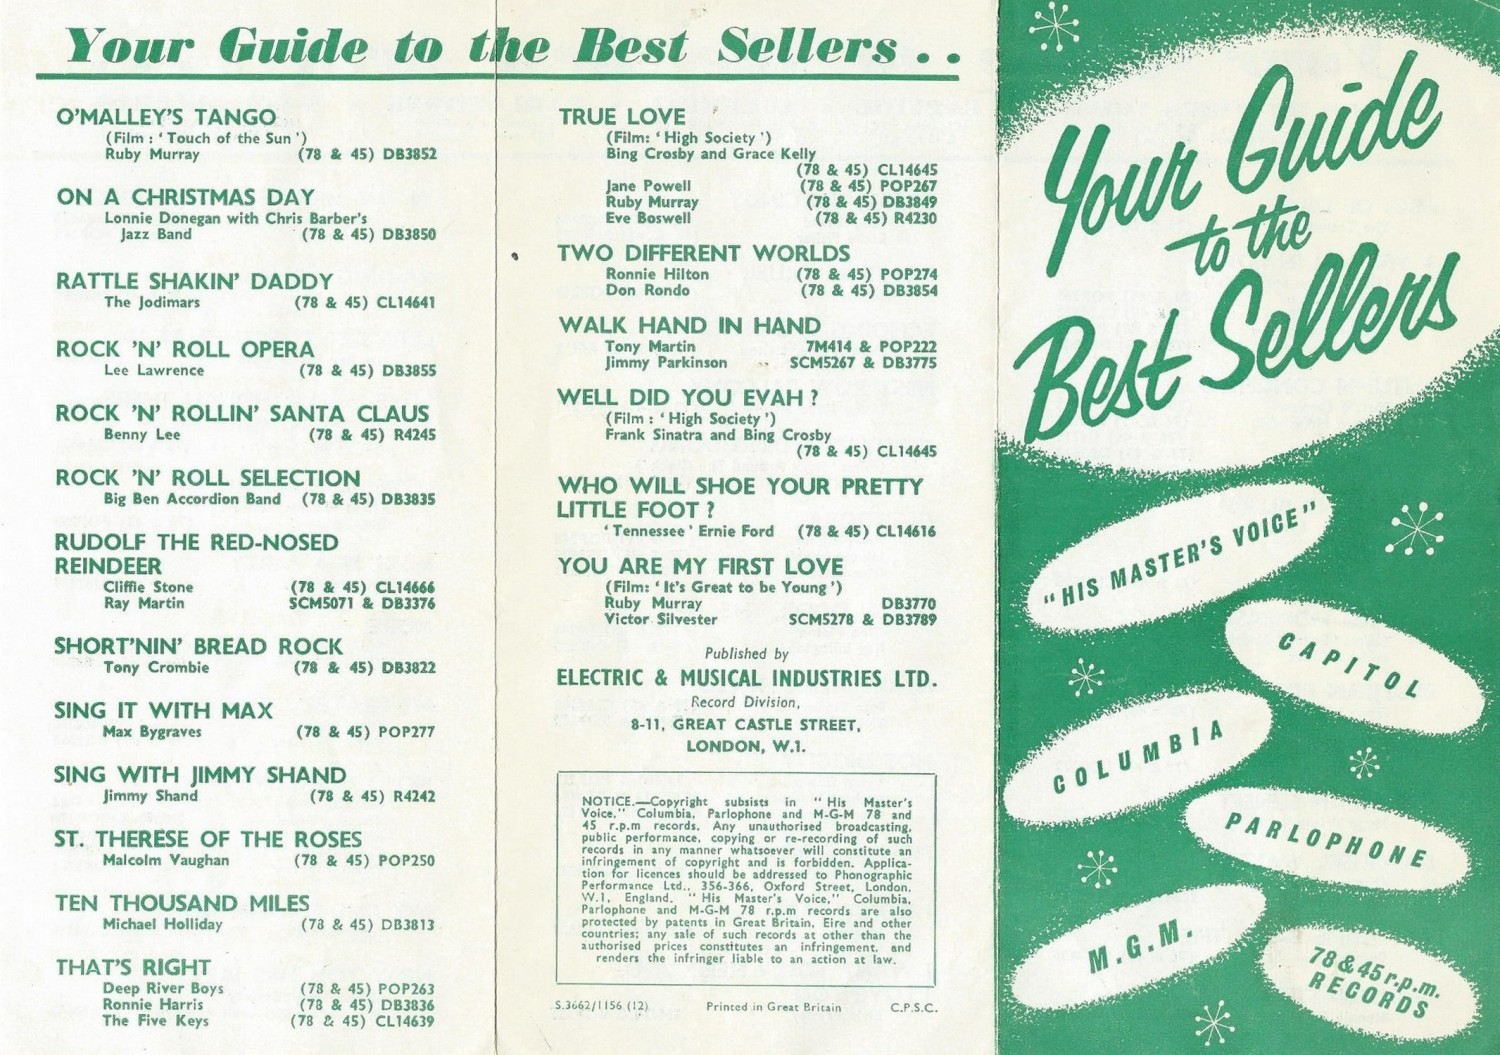 HMV Your Guide To Best Sellers 1956-11 (Alan White) 01